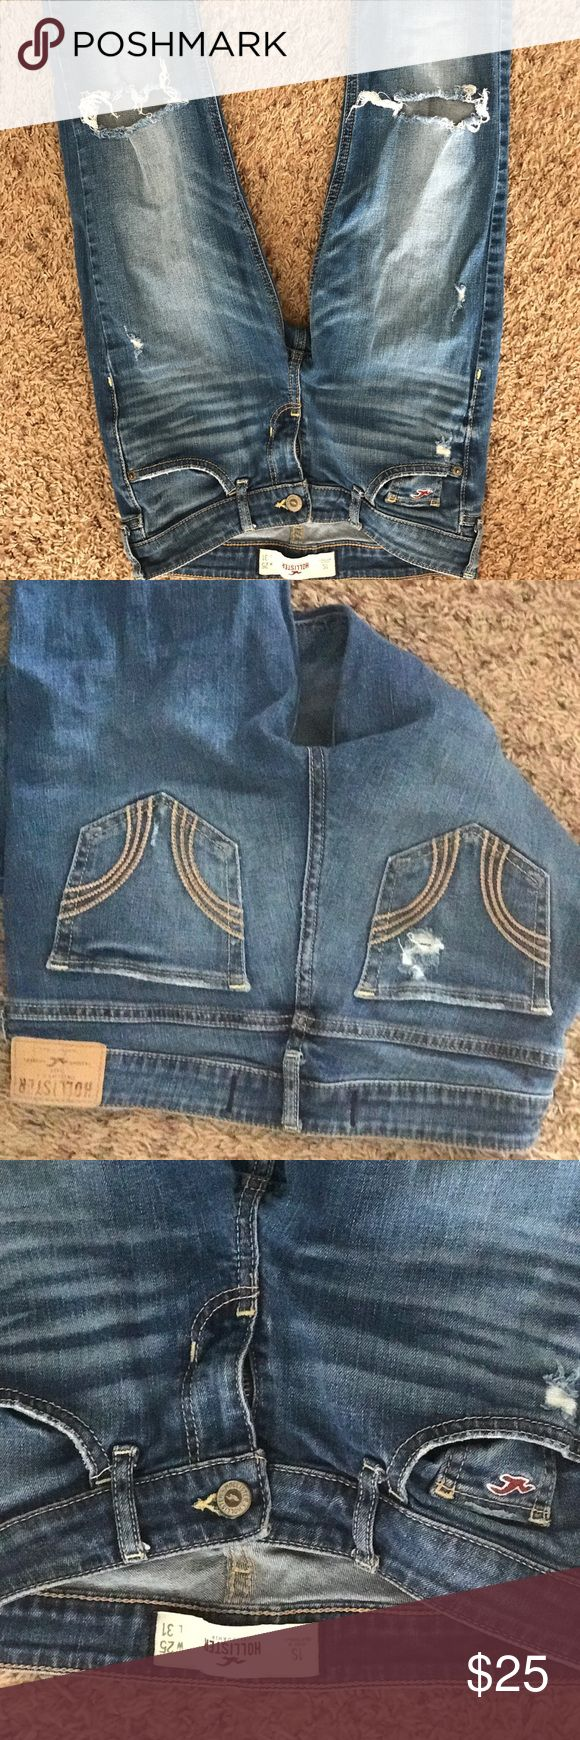 Size 1S Hollister Boot Leg Jean No pulls, rips or stains. In perfect condition! Hollister Jeans Boot Cut